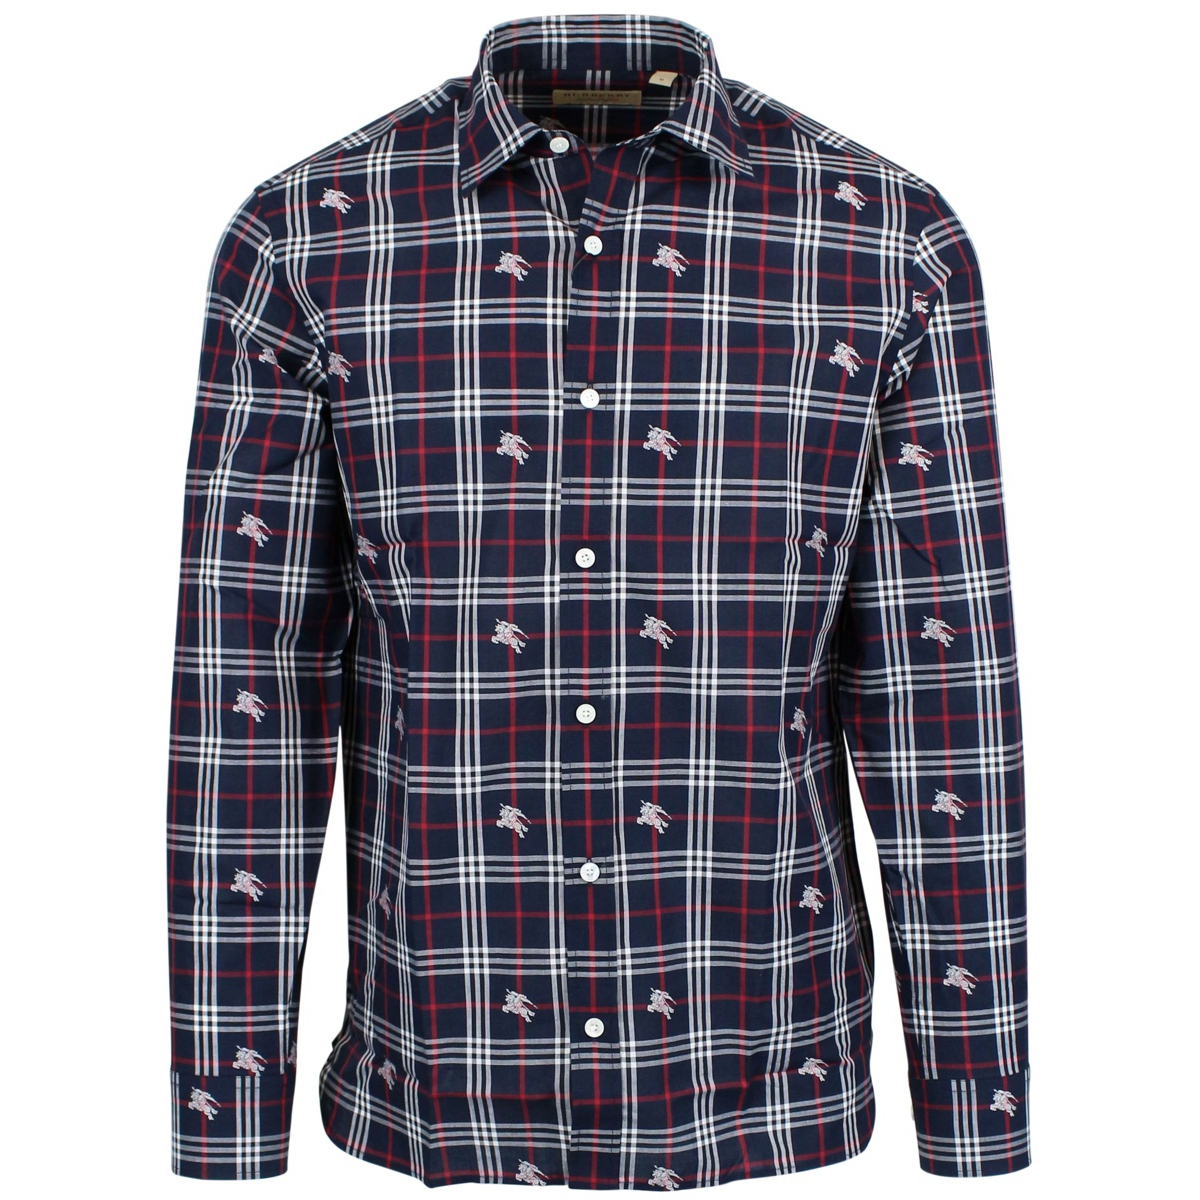 Edward shirt with logo Navy Burberry